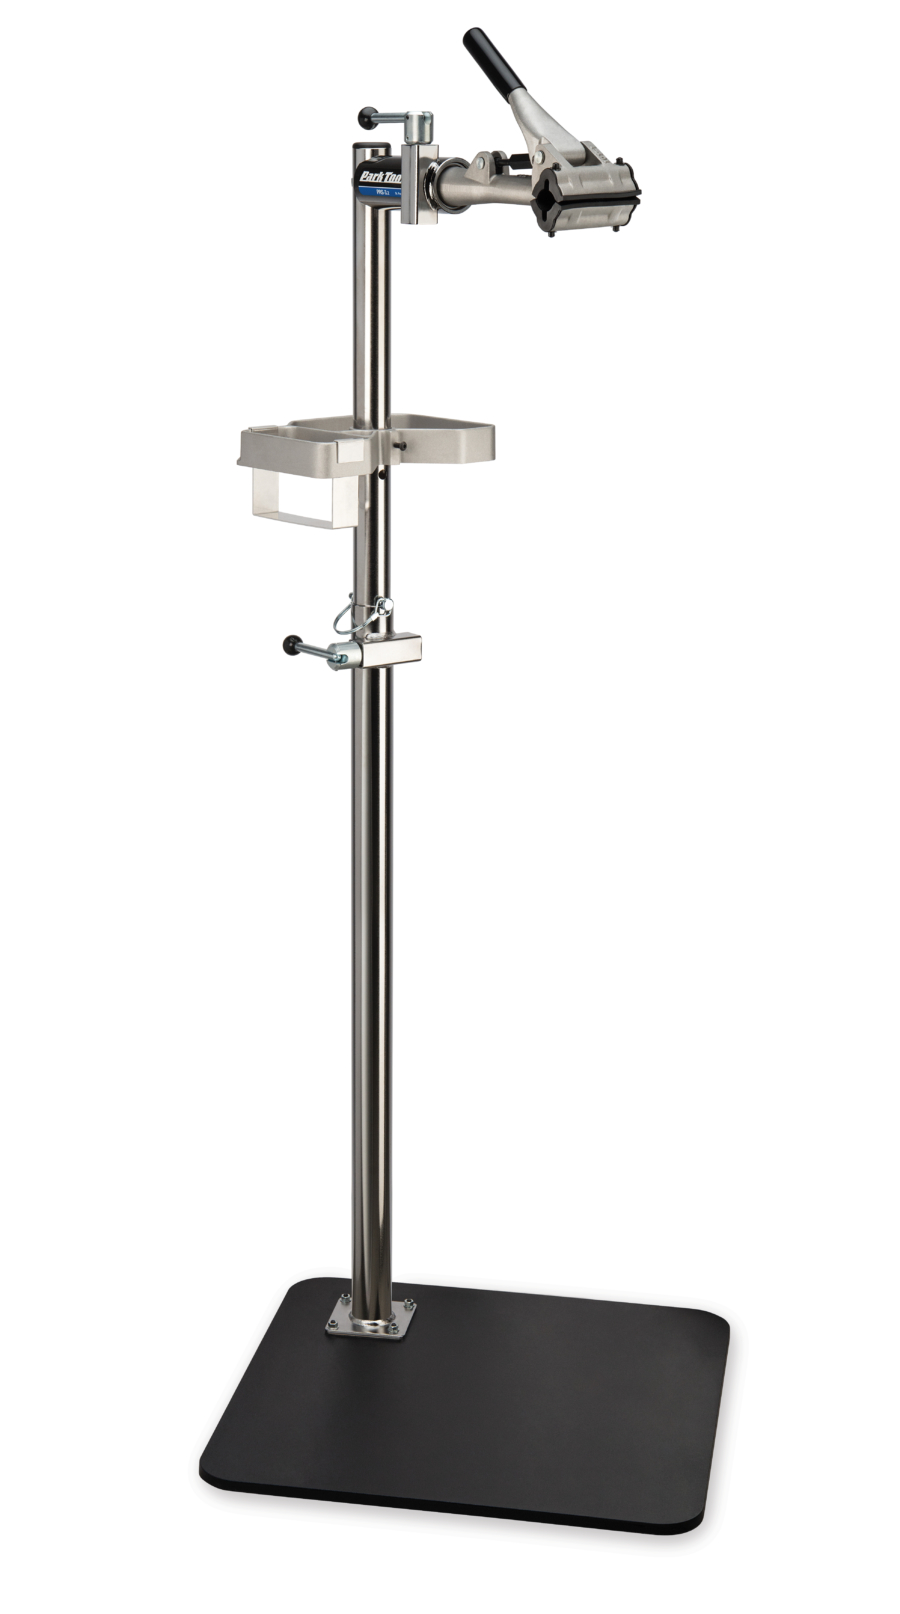 Prs 3 2 1 Deluxe Single Arm Repair Stand Park Tool